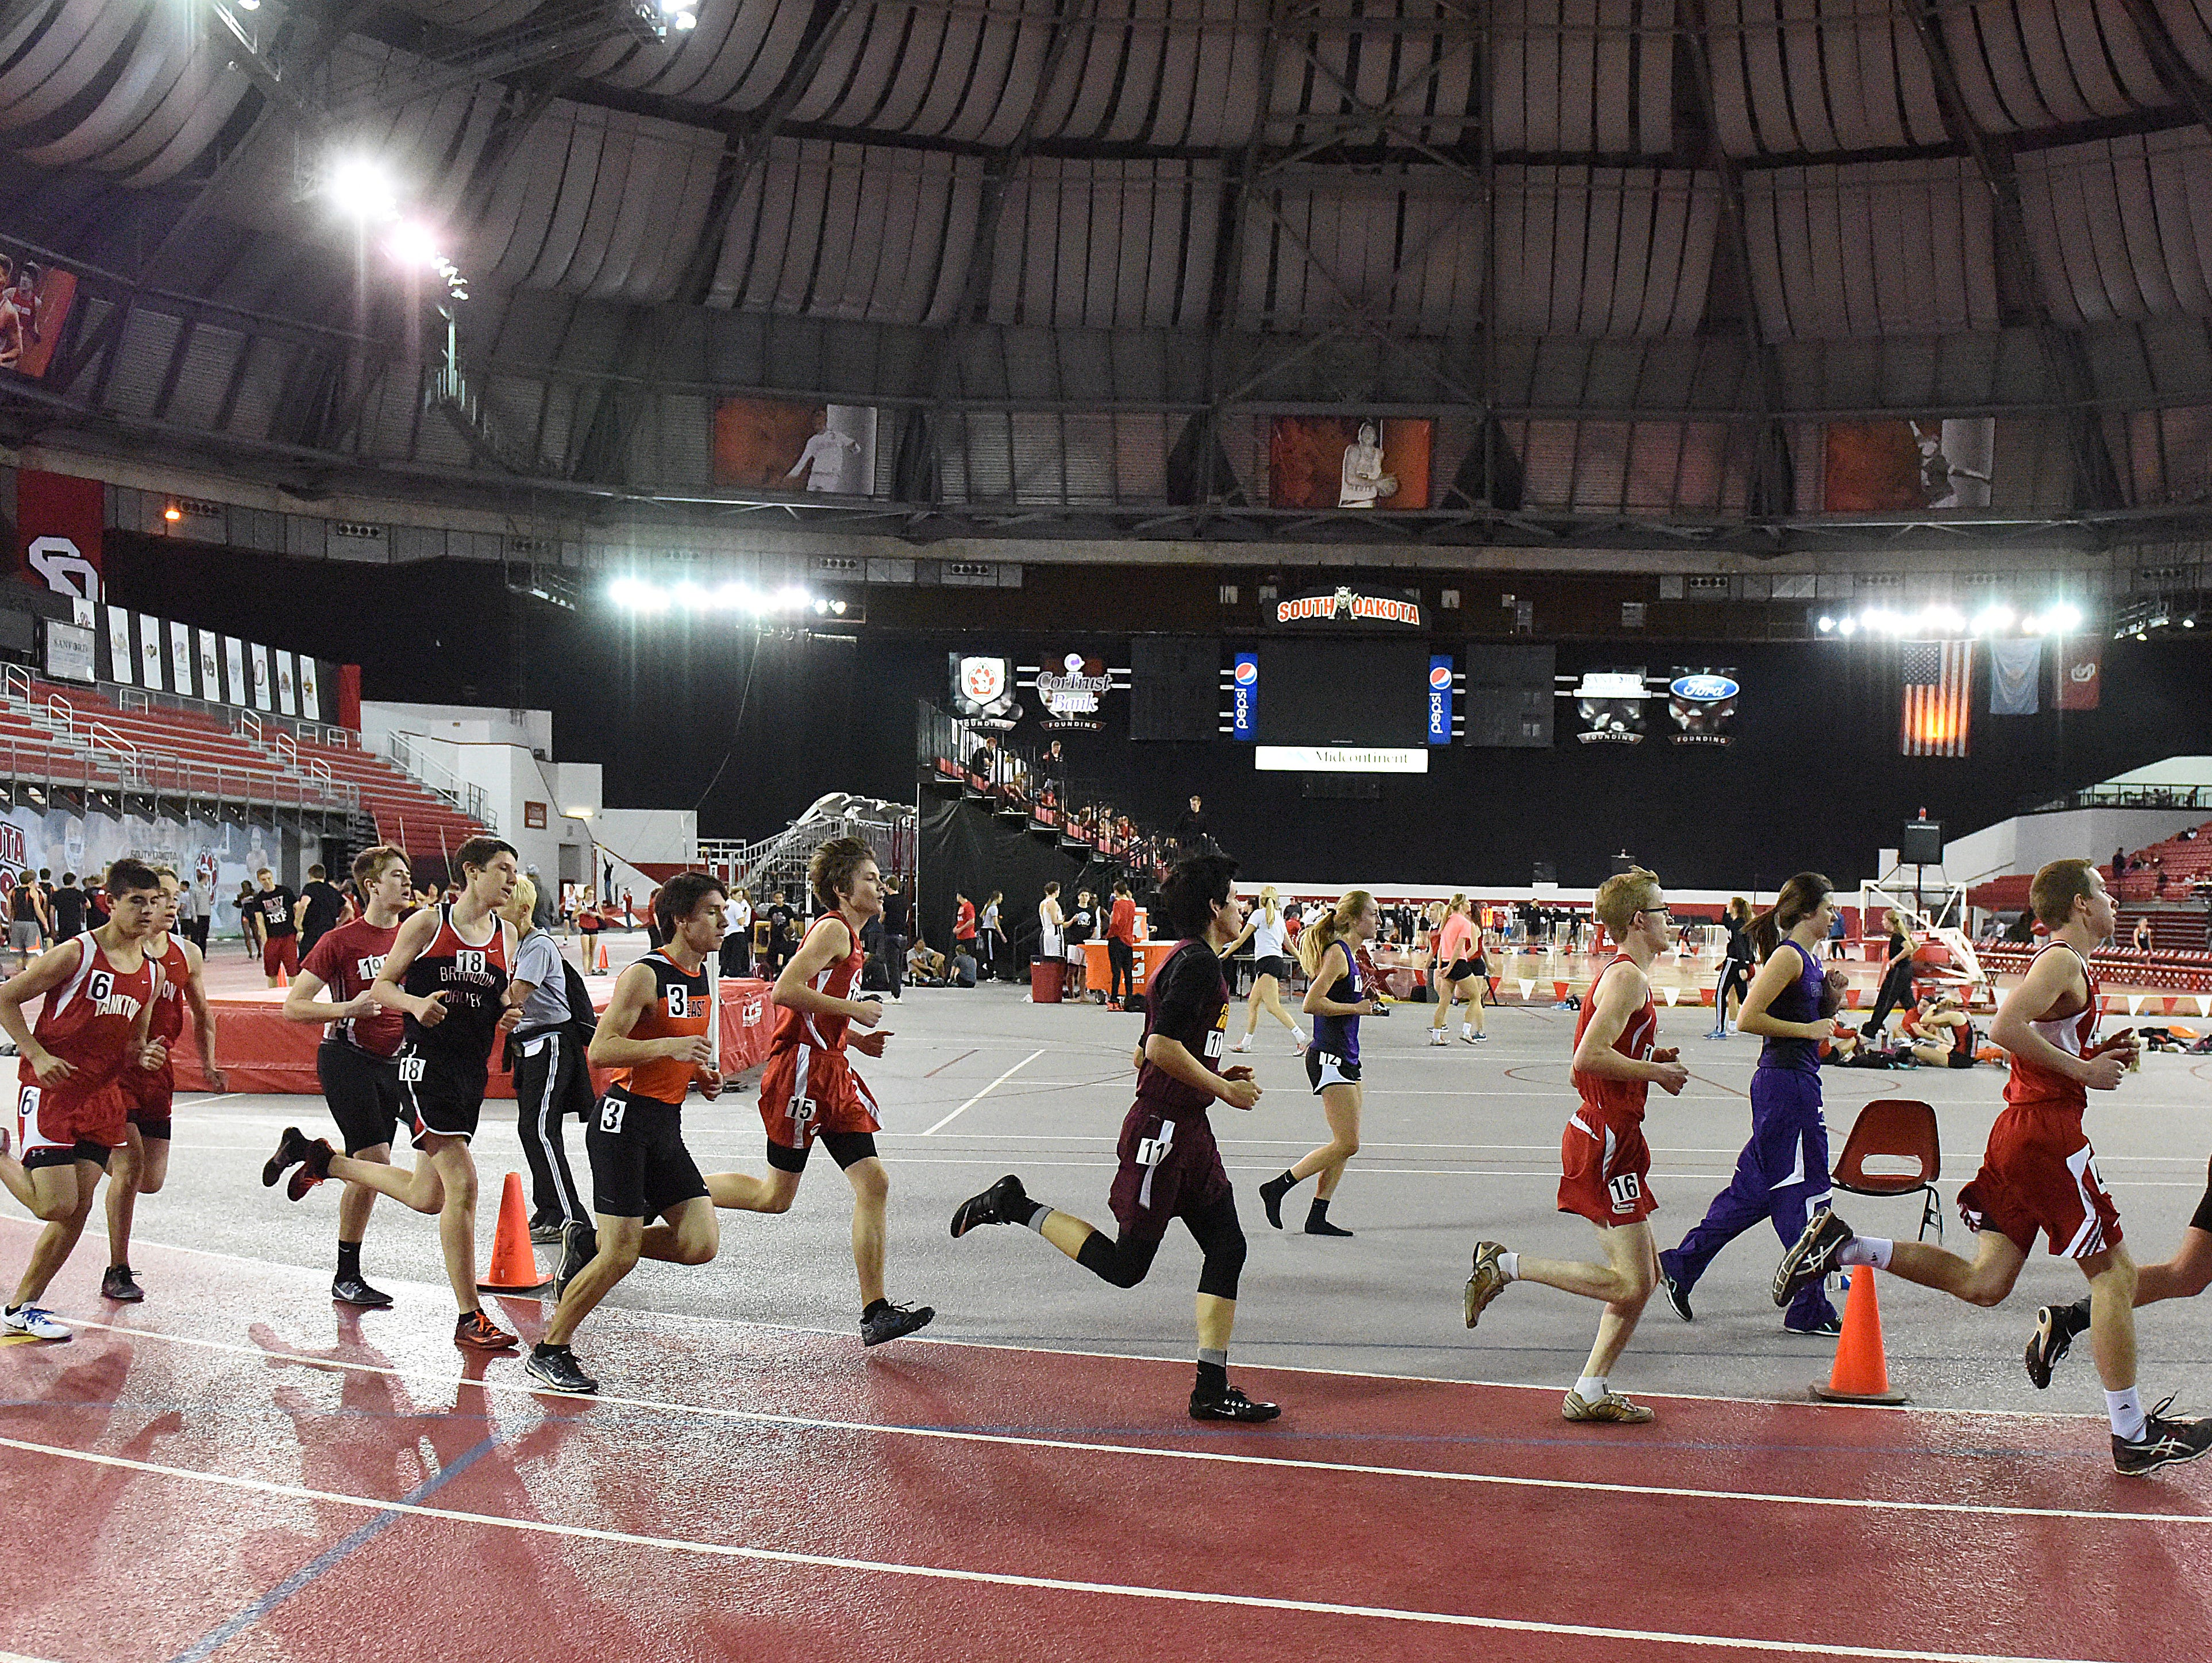 Runners make their way around the track in the boys 1600 meter run during the Dan Lennon Invitational at the DakotaDome in Vermillion on Monday, March 28, 2016.